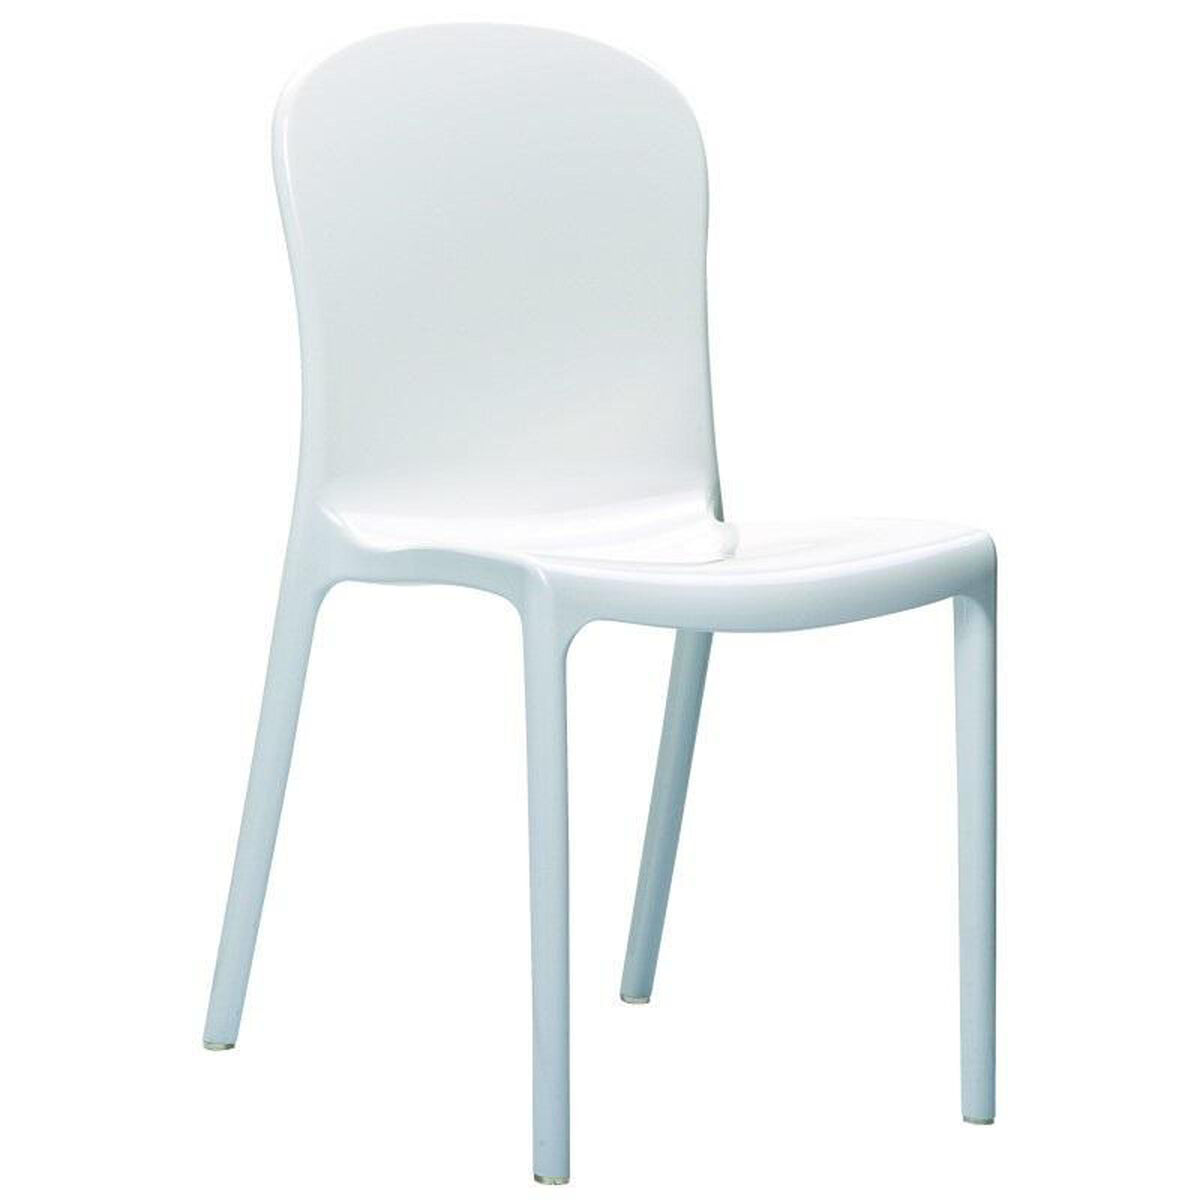 polycarbonate furniture. Our Victoria Modern Outdoor Polycarbonate Stackable Dining Chair - Glossy White Is On Sale Now. Furniture E